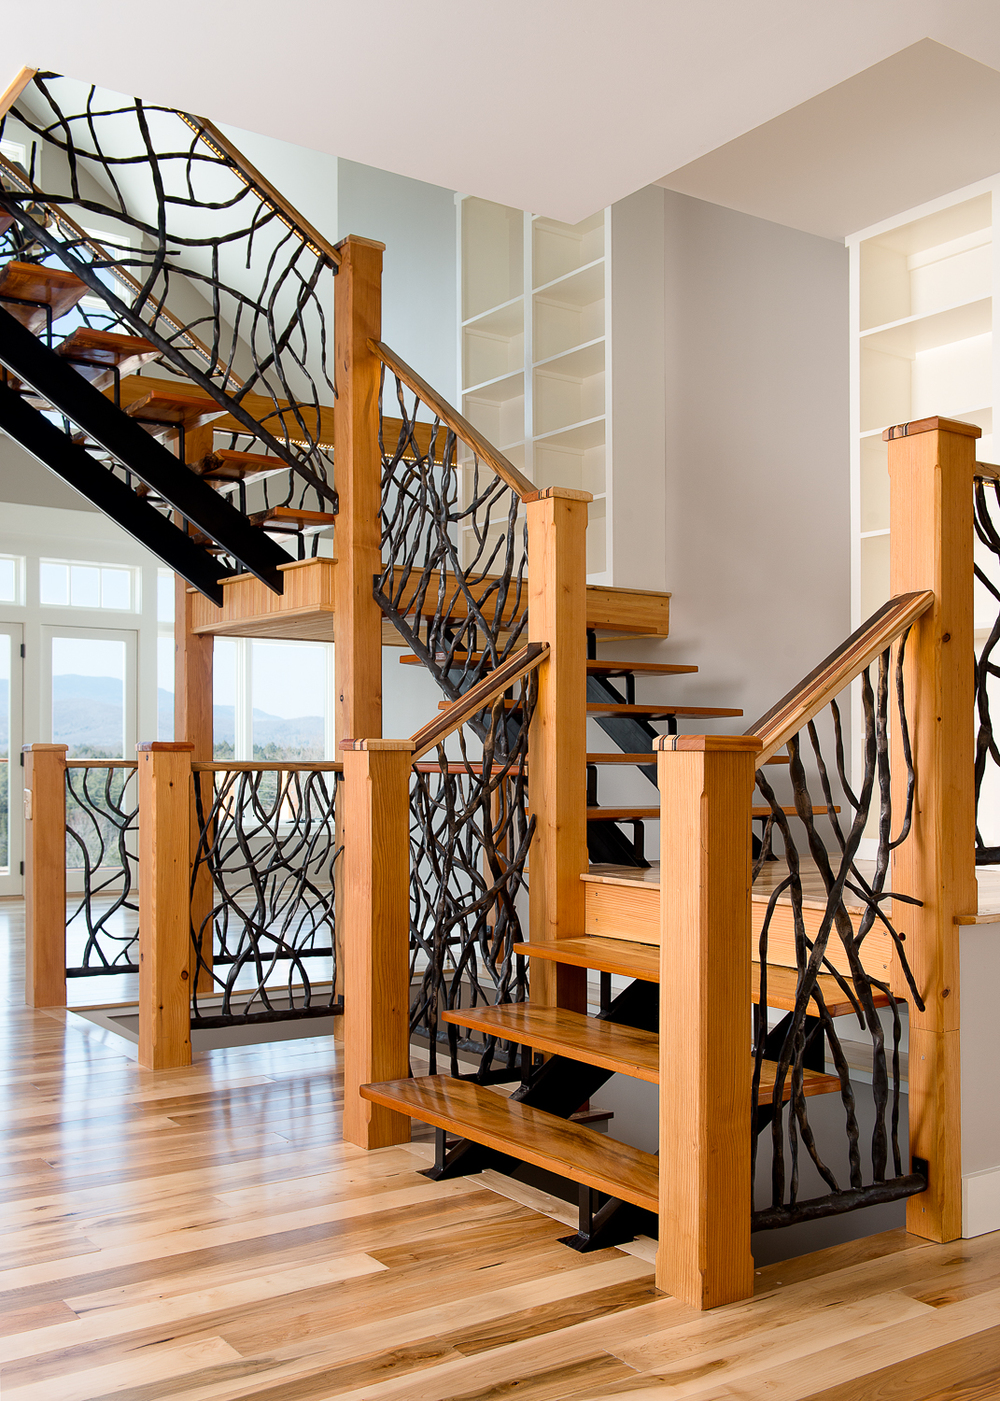 Staircase with custom built-ins for extra storage.